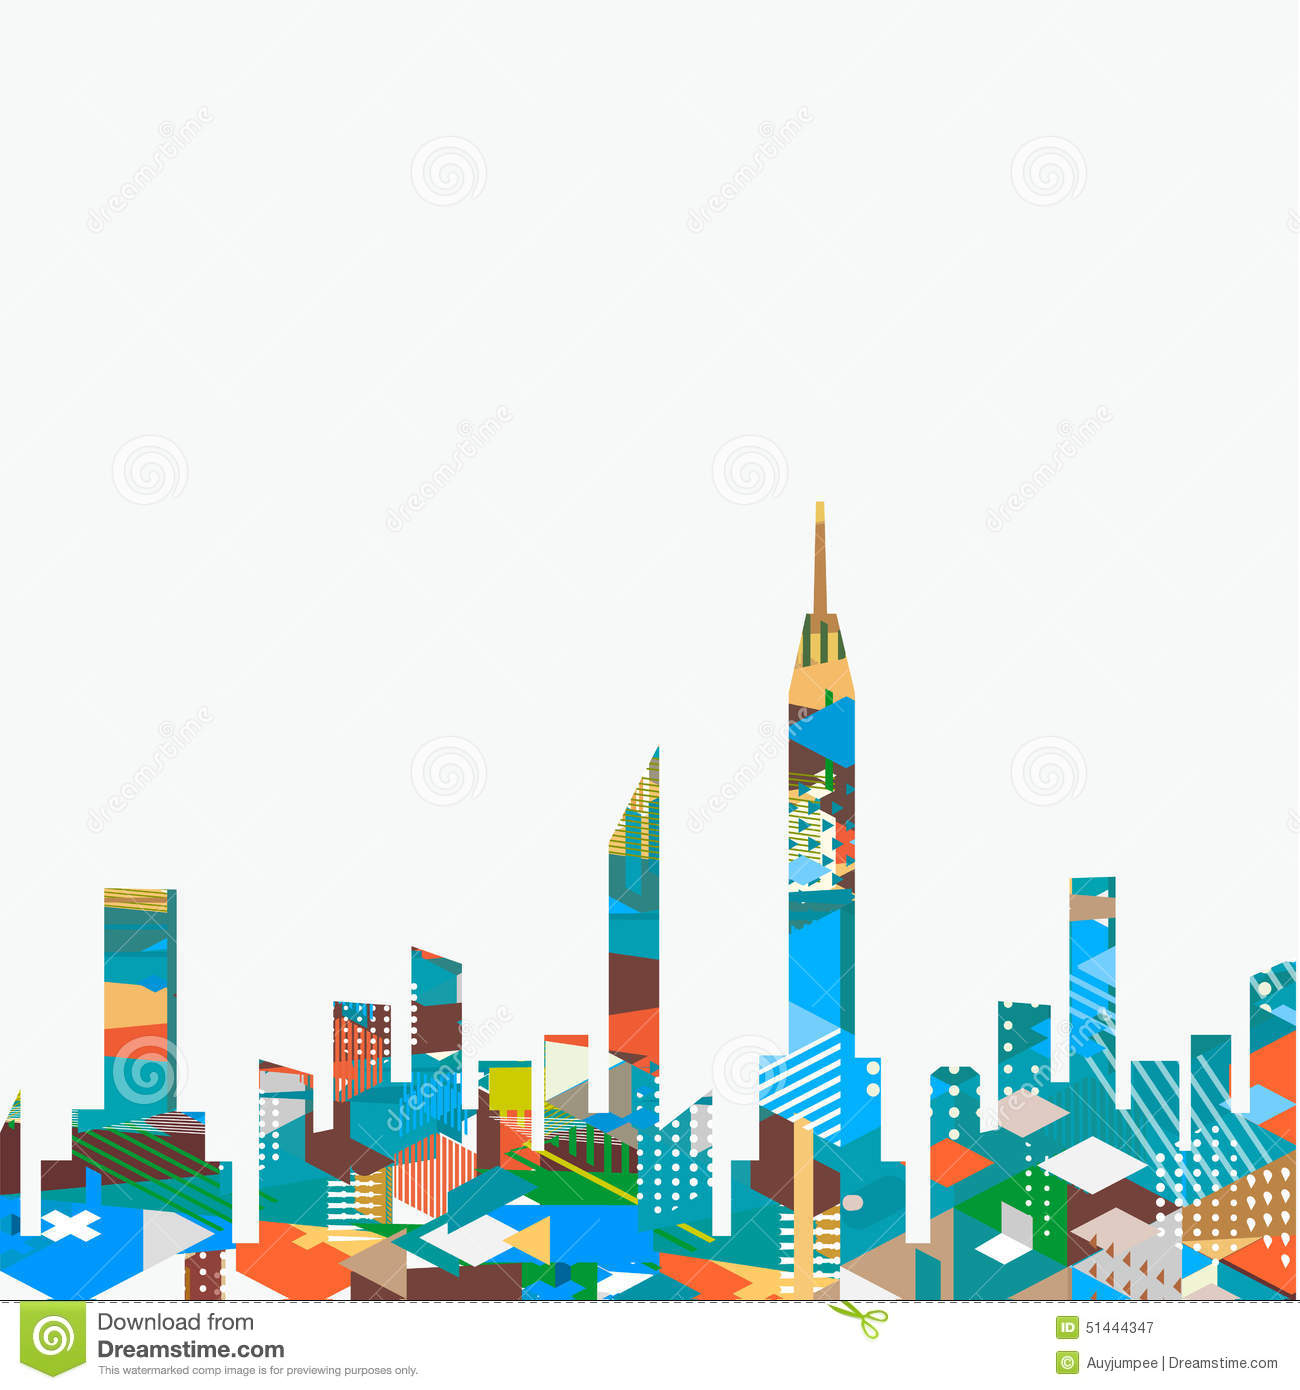 Town Landscape Vector Illustration: City Landscape With Colorful Geometric Graphic Isolate On